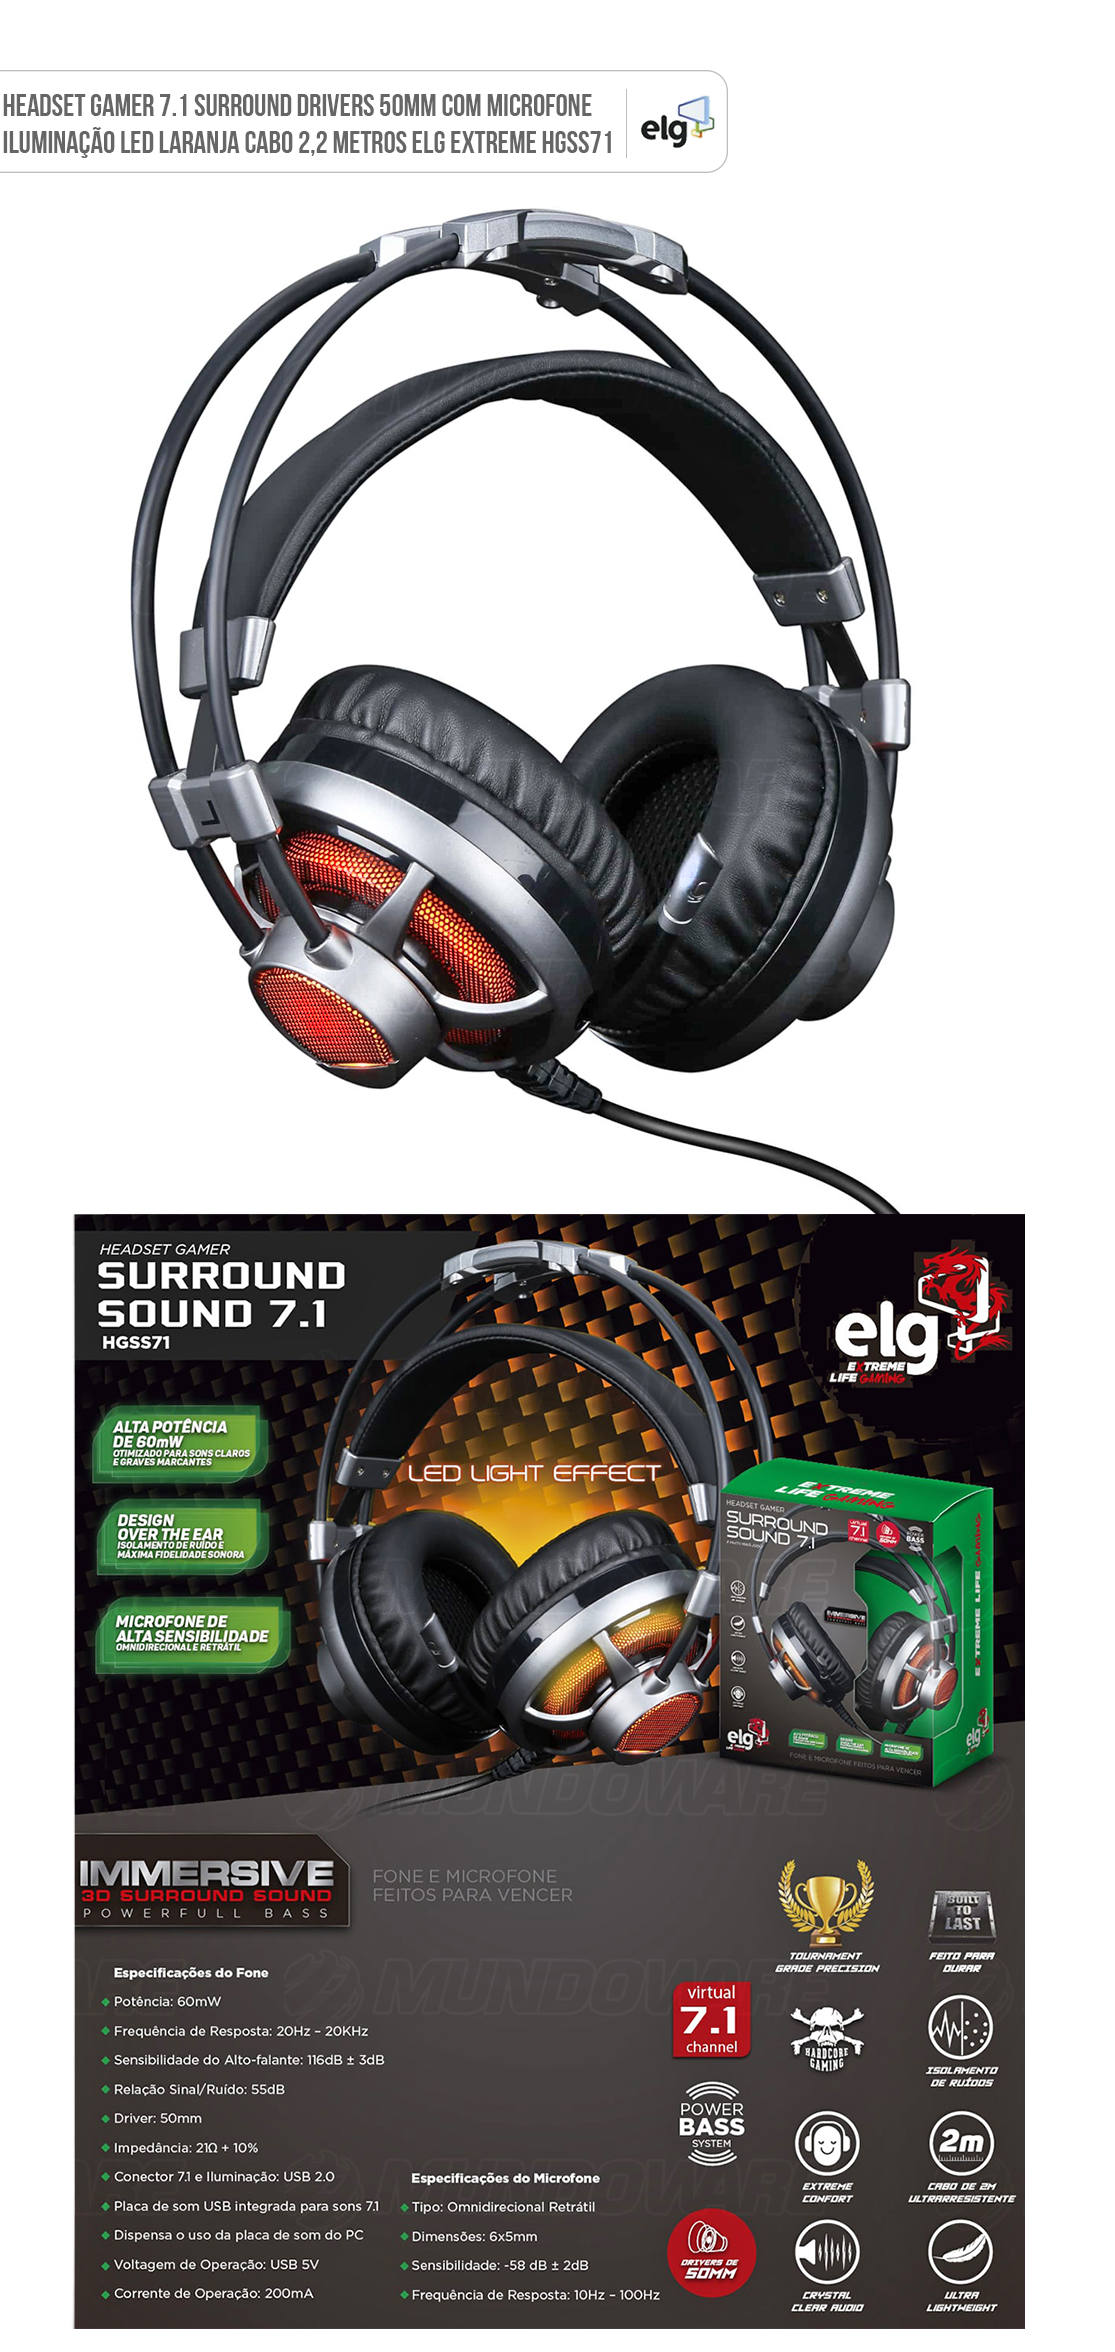 Headset Gamer 7.1 Surround com Microfone Led Laranja Drivers 50mm Cabo 2,2 Metros ELG EXTREME HGSS71